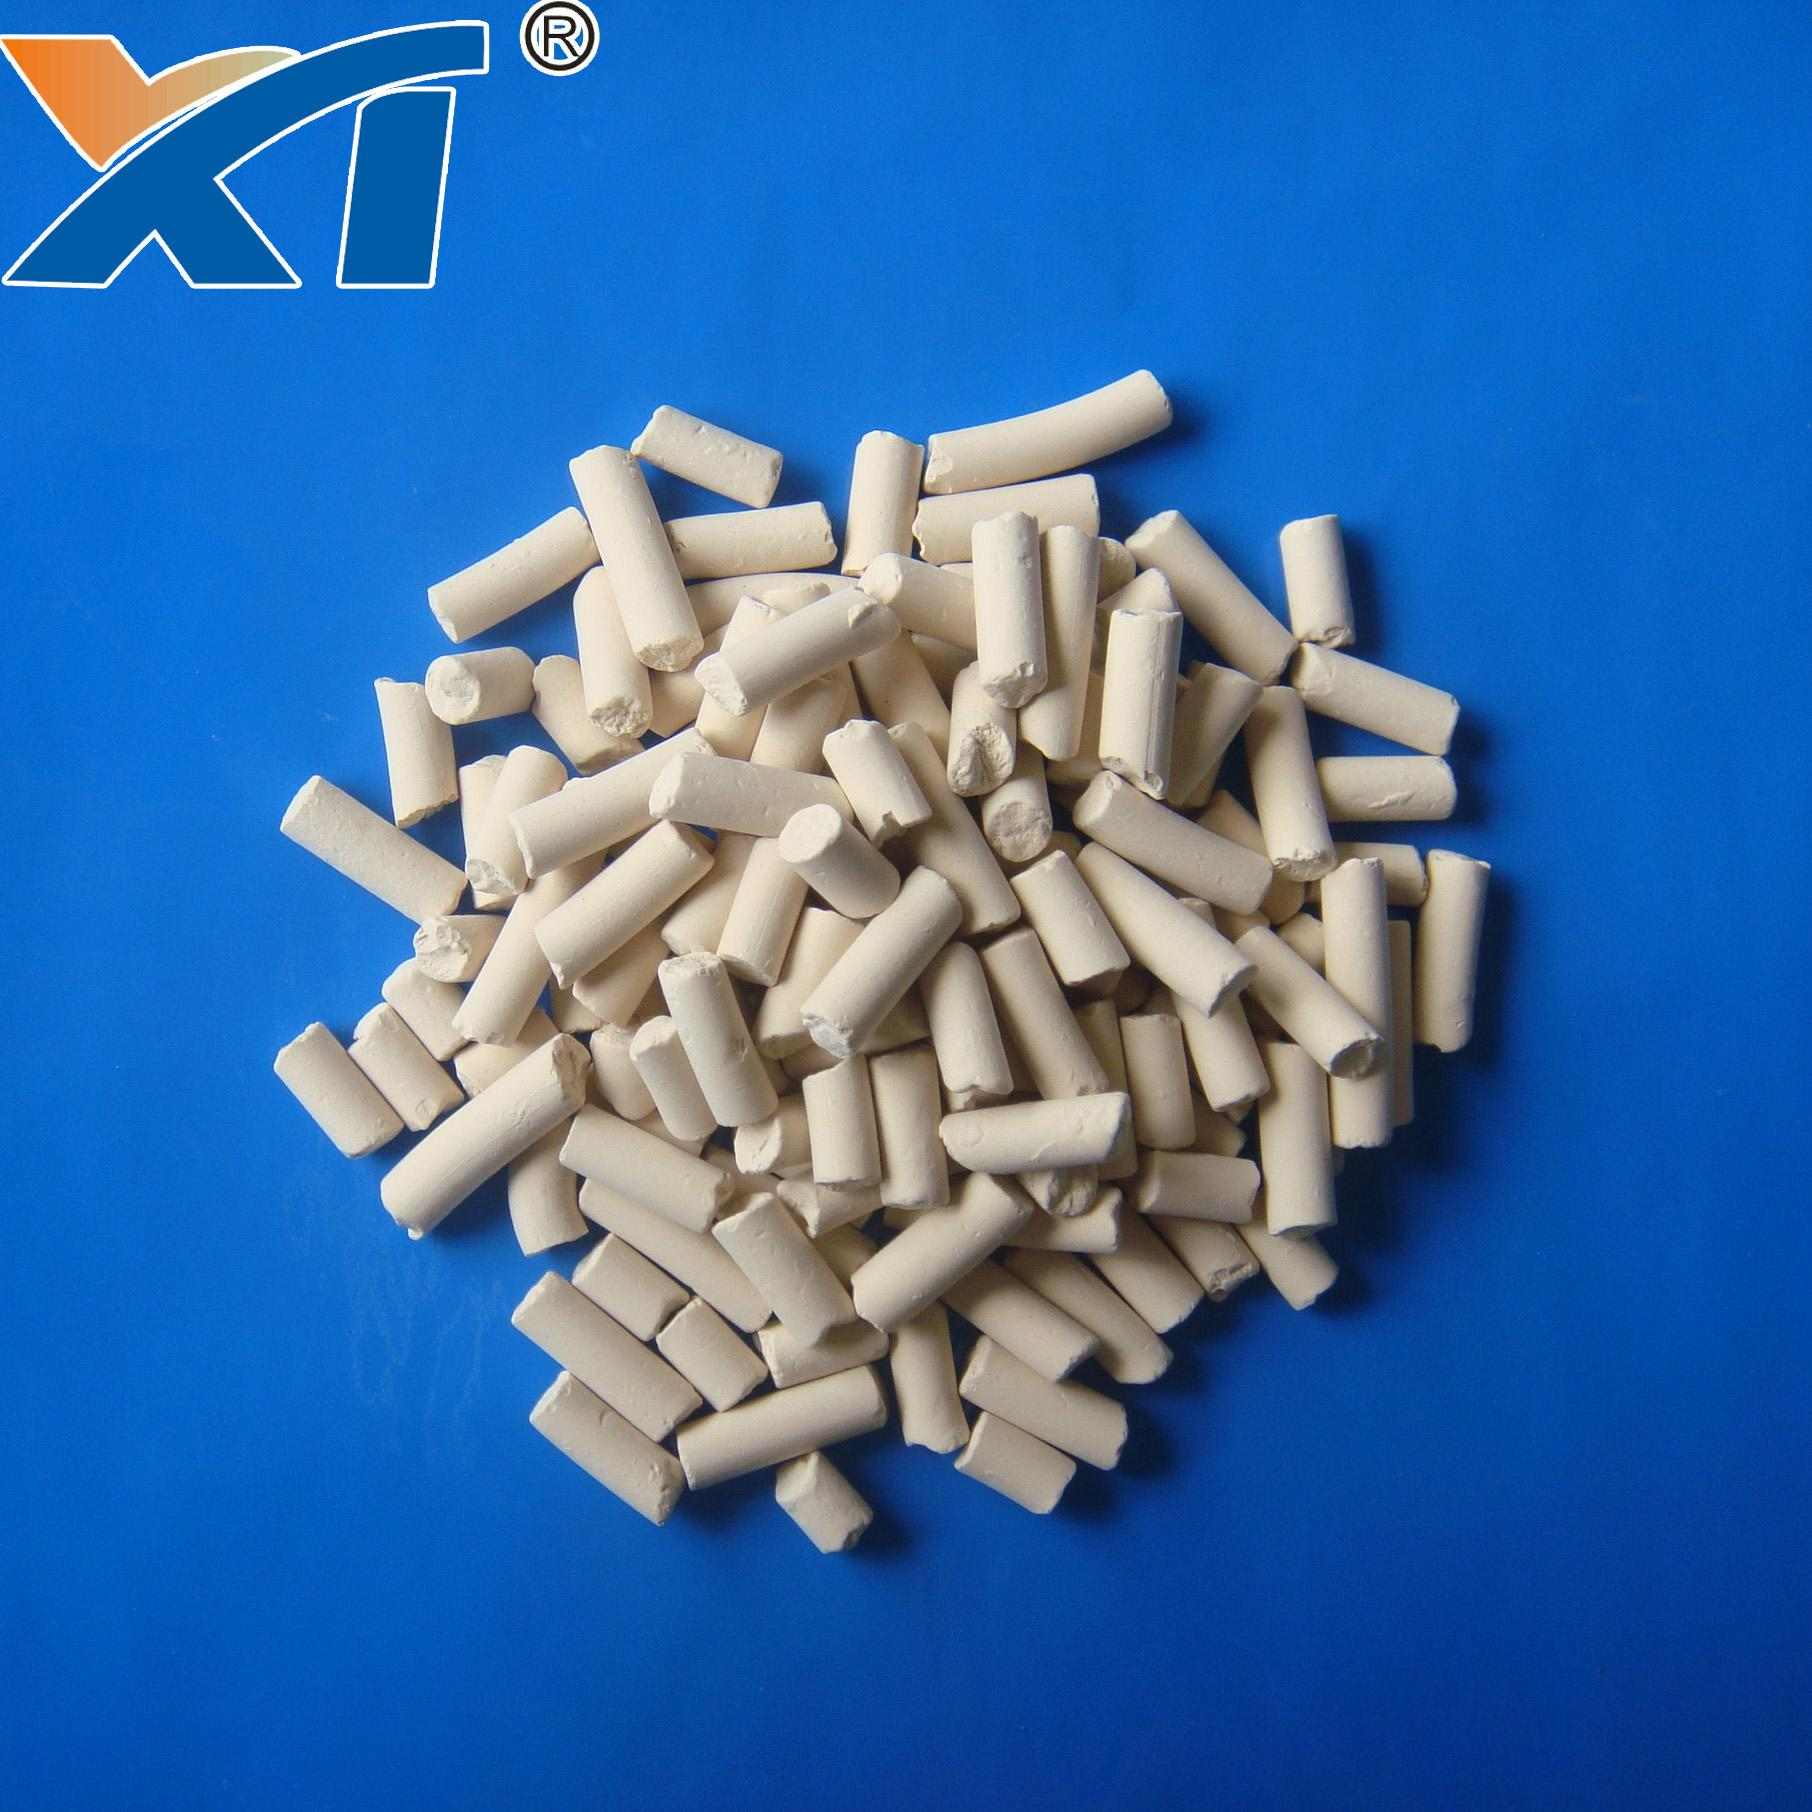 Molecular sieve 13x apg for air cryp-seperation for removal CO2 and H2O 2